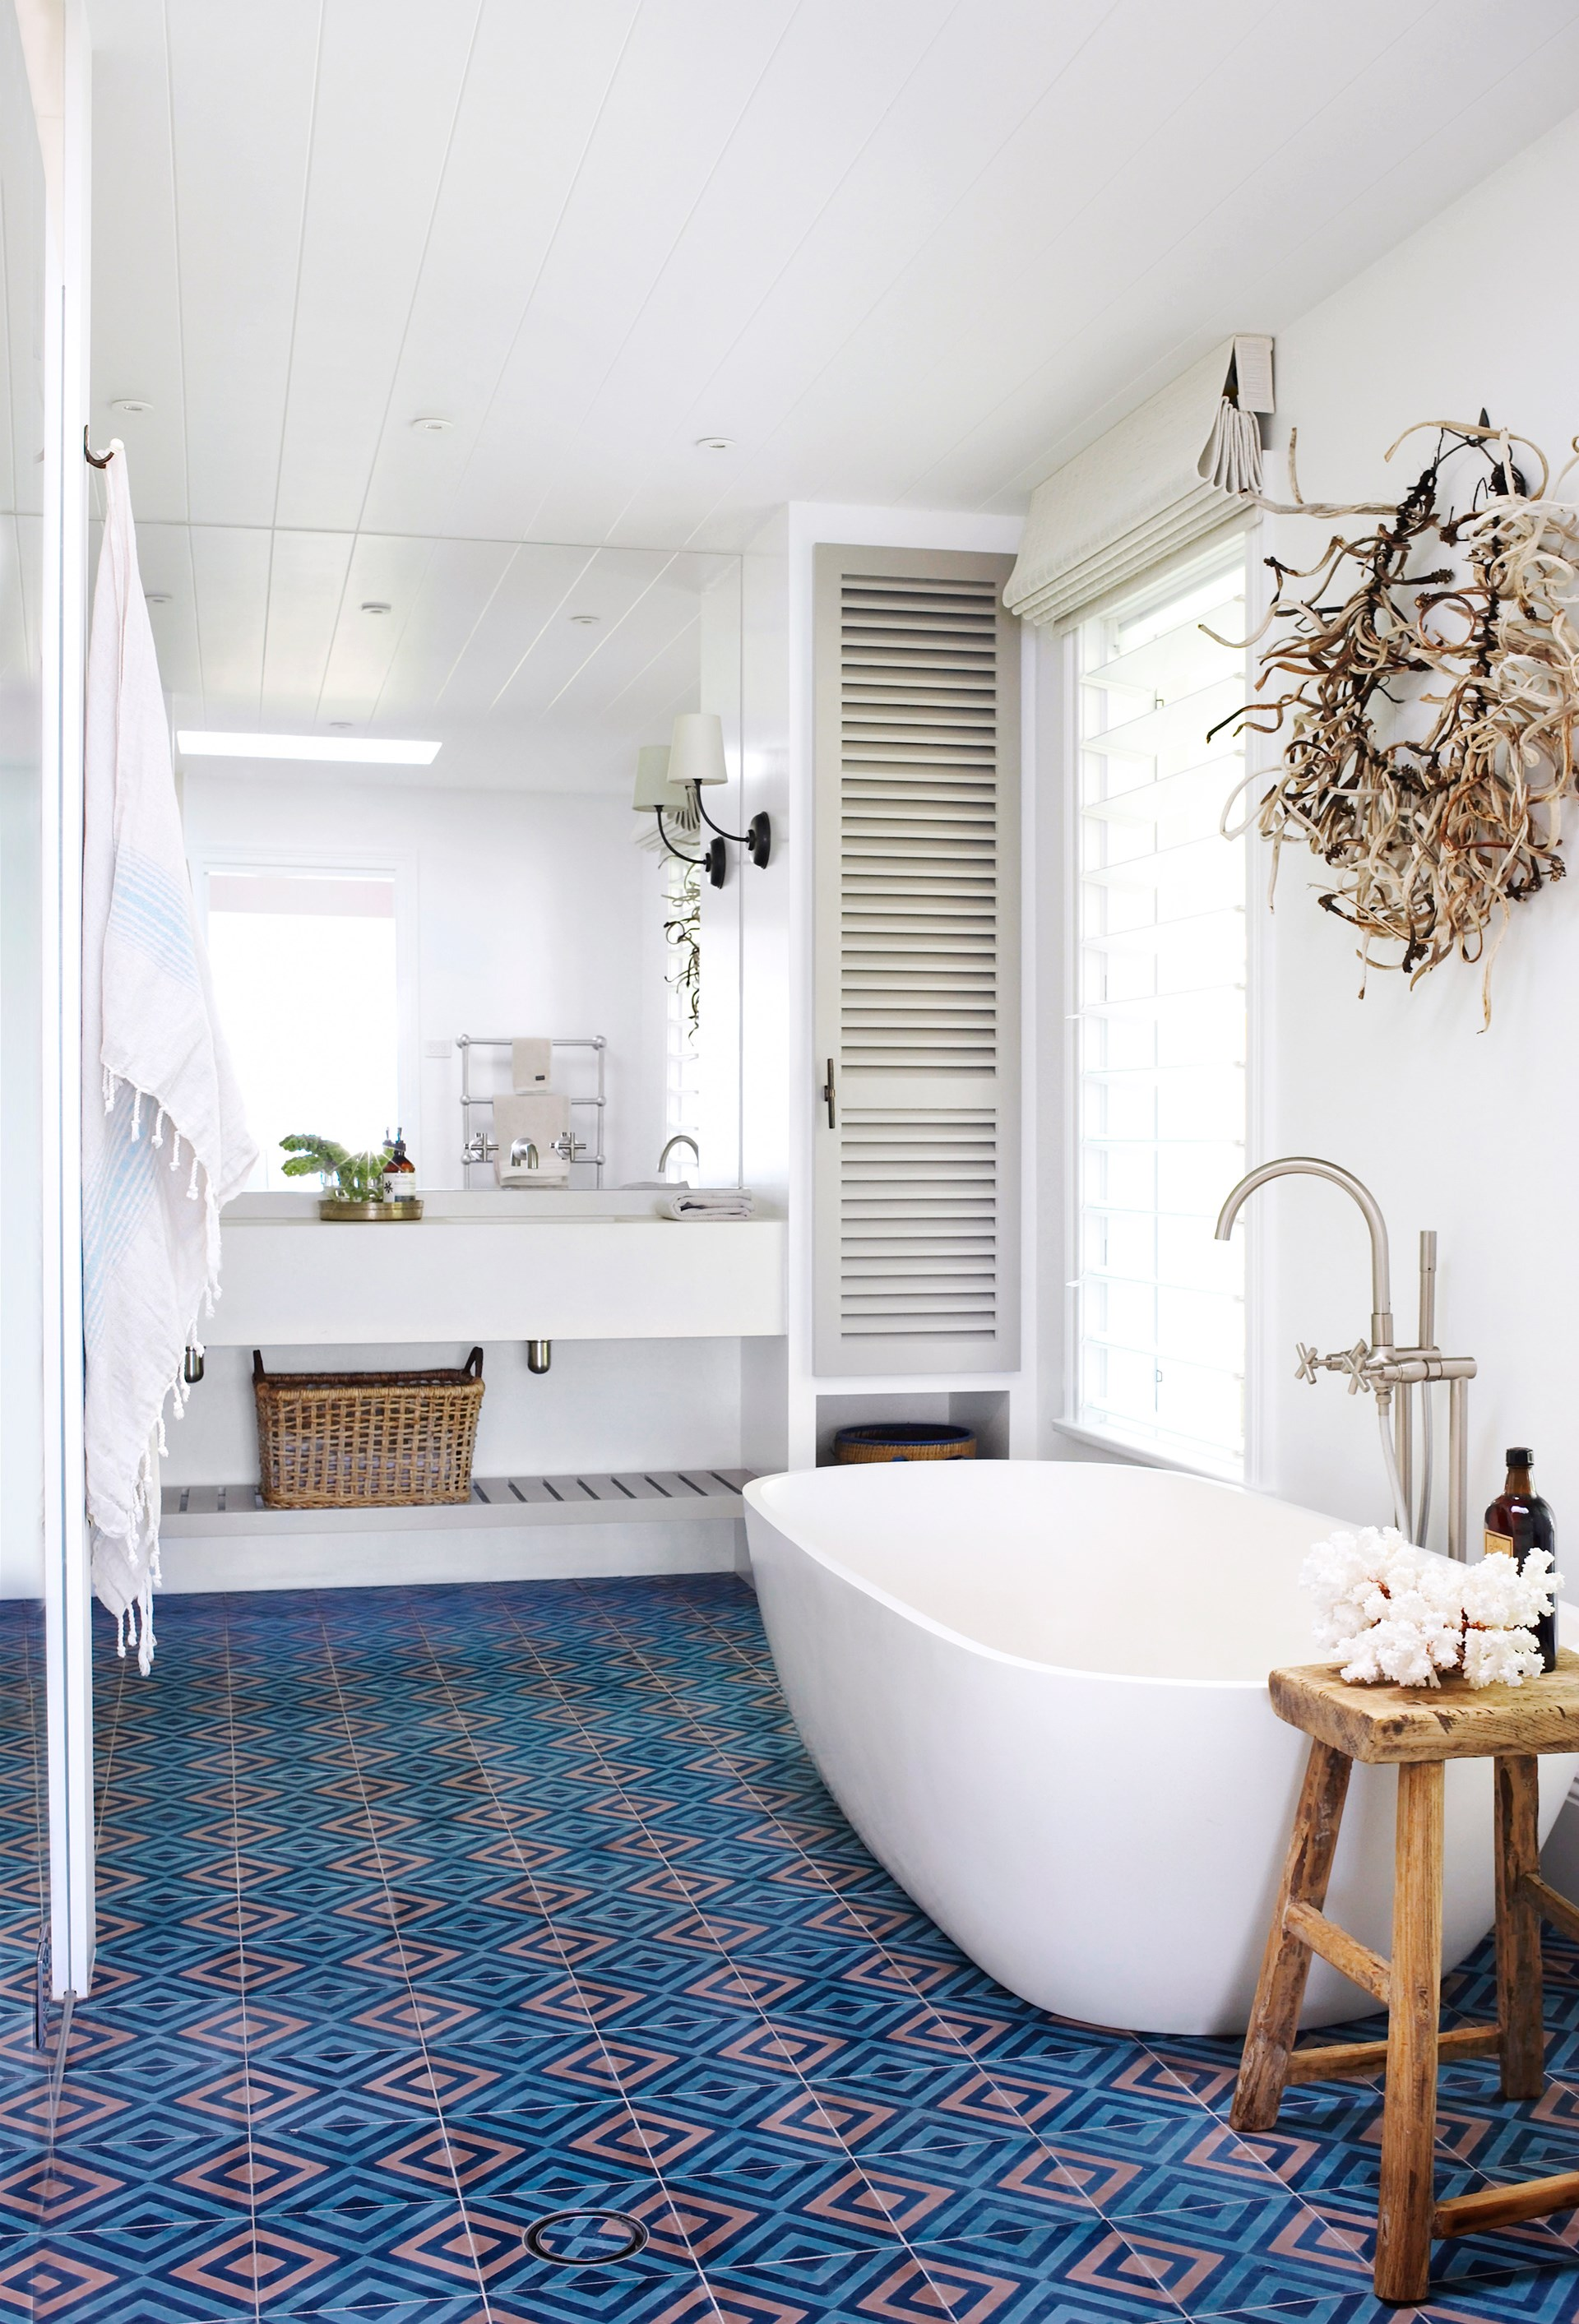 The ensuite in this [luxury coastal home](http://www.homestolove.com.au/a-luxury-coastal-home-on-sydneys-northern-beaches-1808) combines a classic coastal palette with modern fixtures for a contemporary seaside feel. Photo: Nicholas Watt / Belle